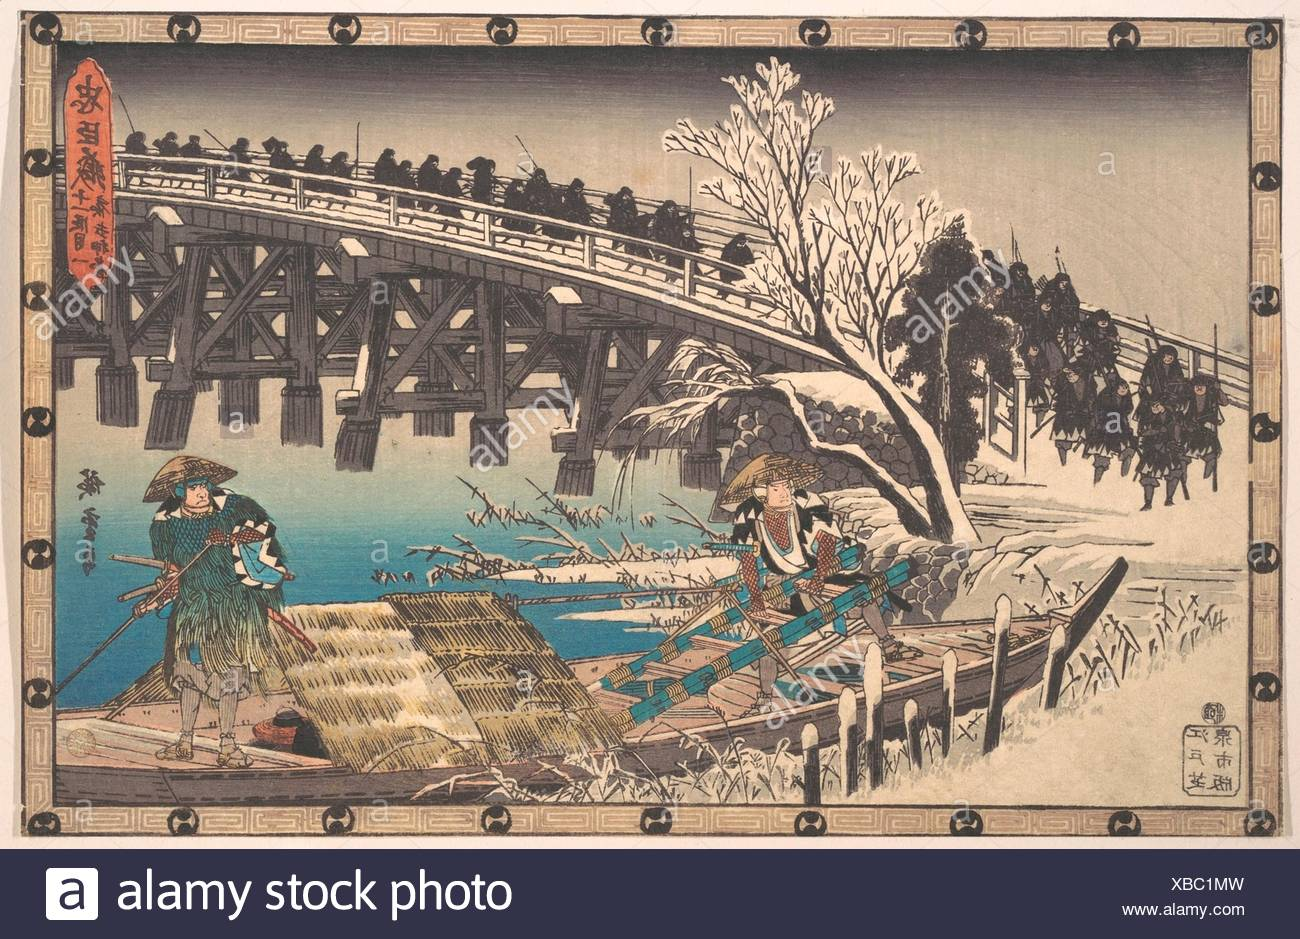 "忠臣蔵 oä¸€æ®µç›®ã€€å¤œæ‰"" 押寄/The Loyal Ronin Crossing the Long Bridge to Embark for the Night Attack upon Moronao. Artist: Utagawa - Stock Image"